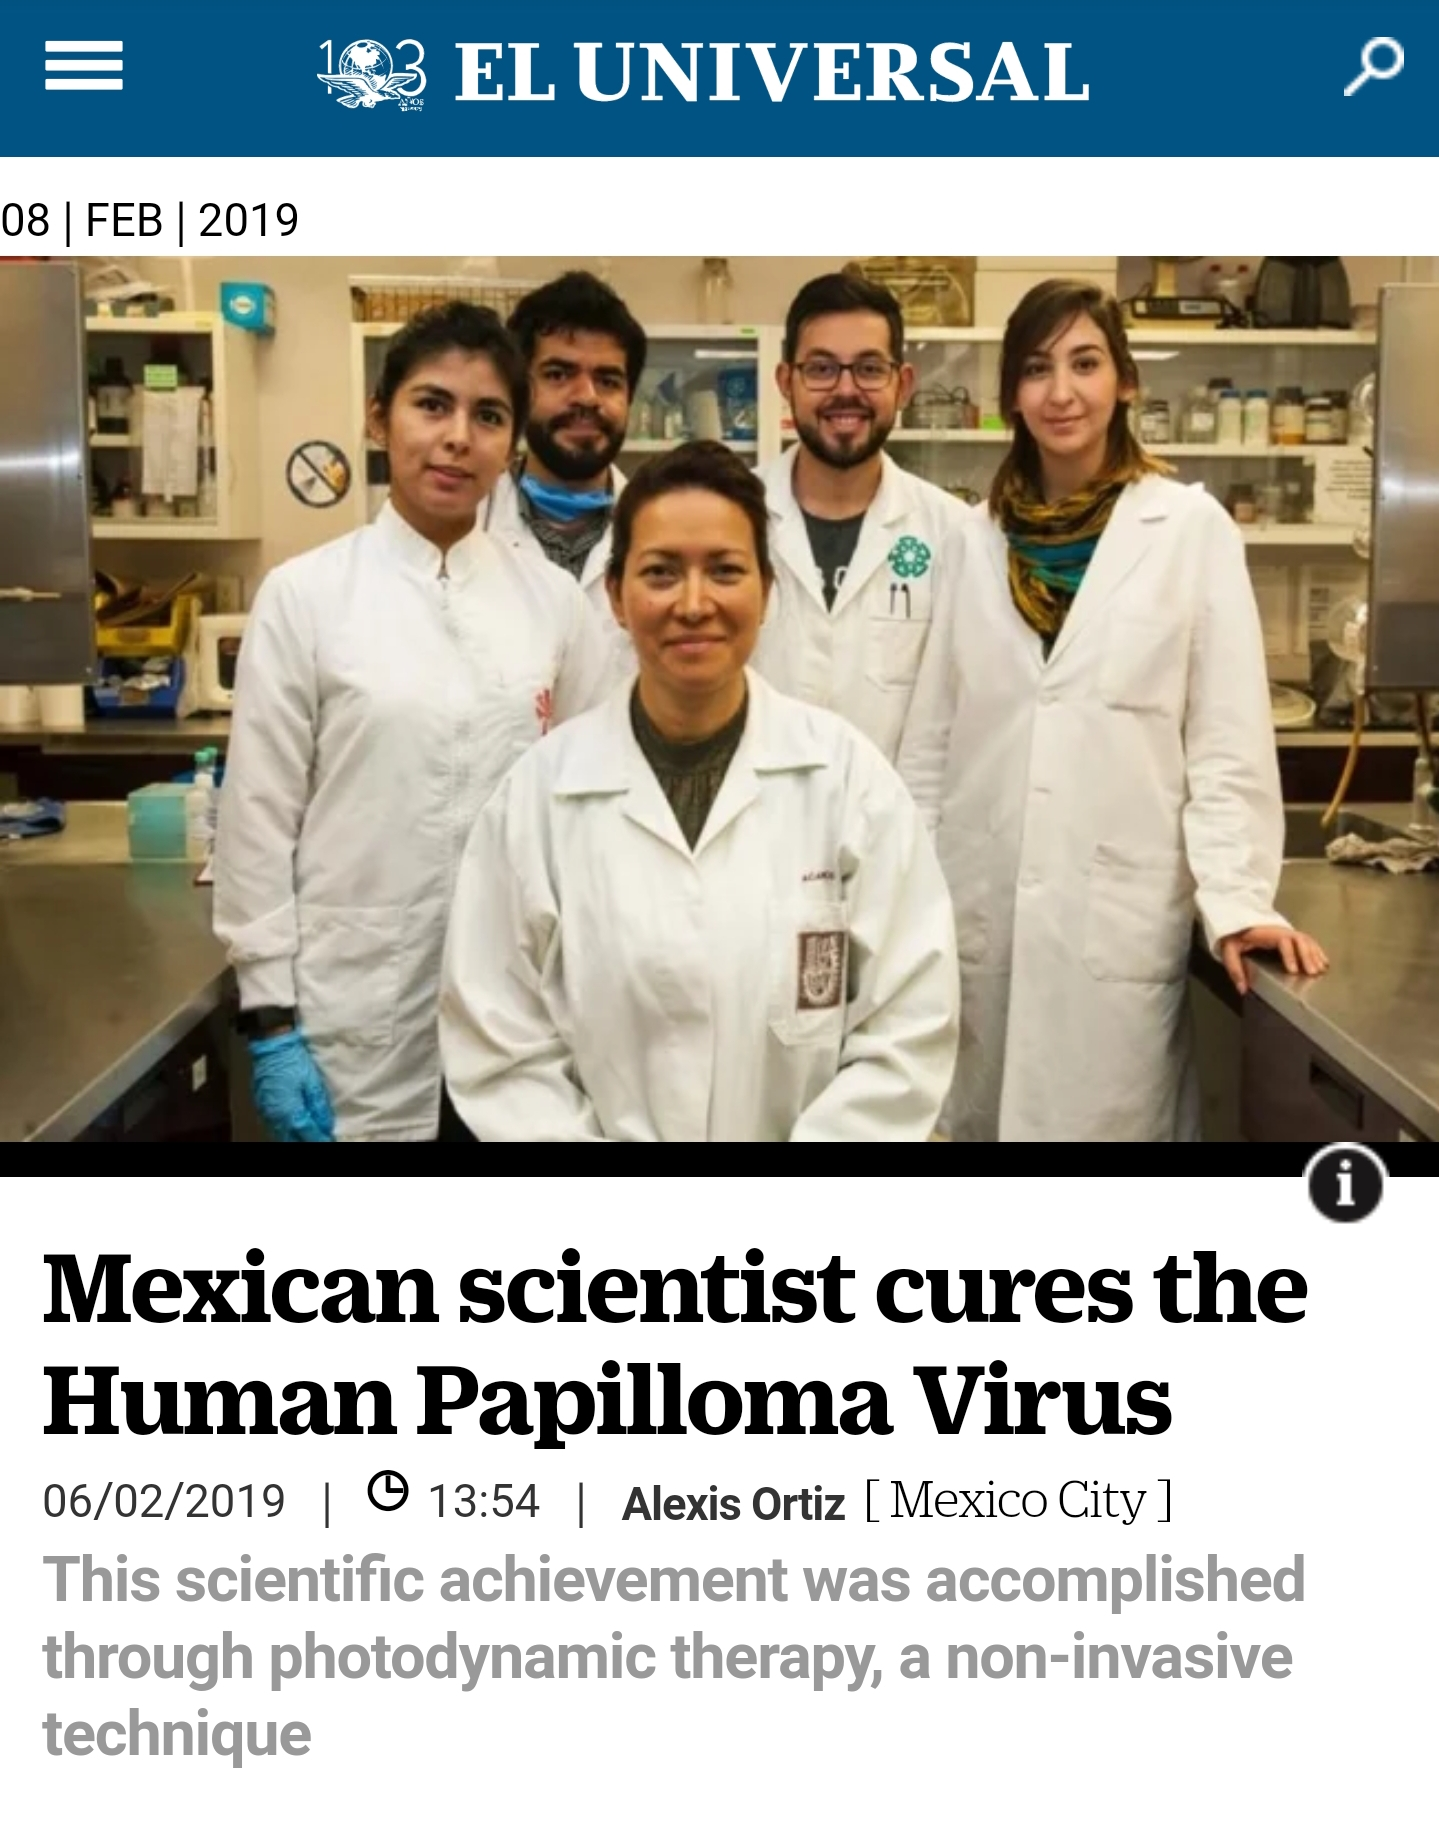 Hpv cure by mexican, Hpv virus cure mexican scientist, Hpv cure mexican